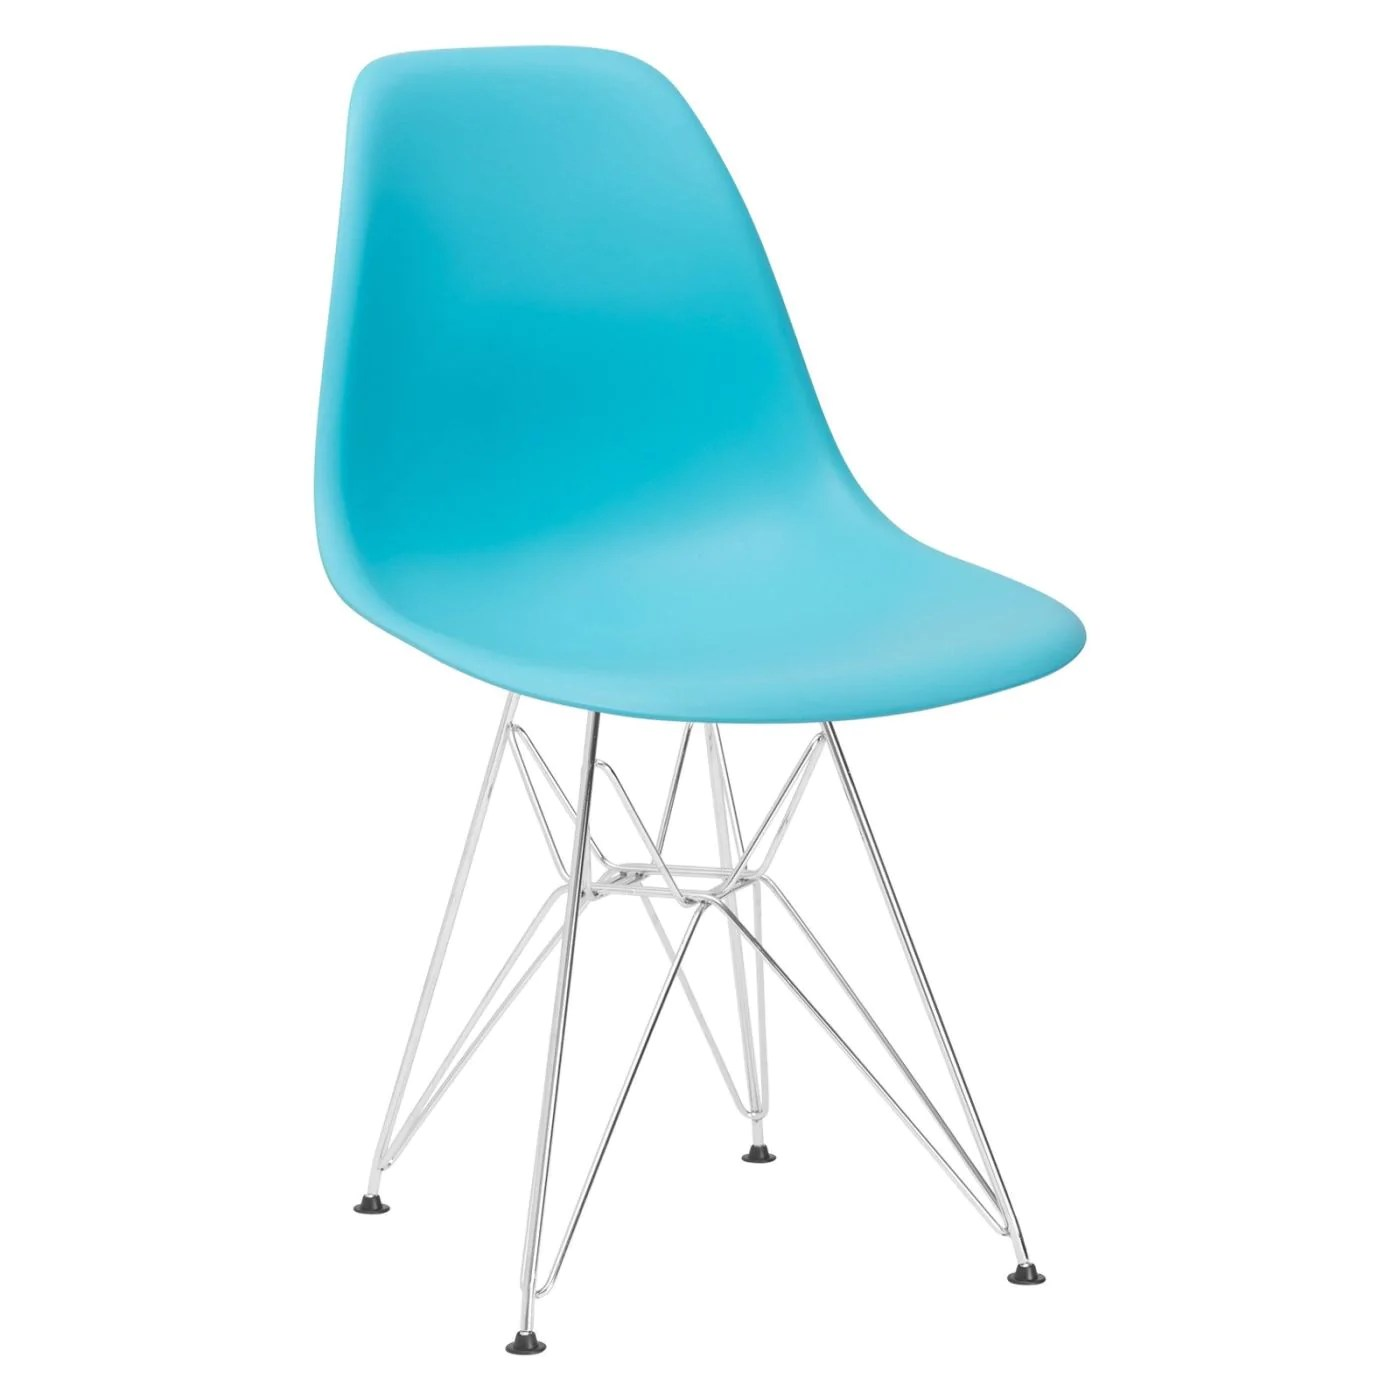 Aqua Dining Chairs Buy Edgemod Em 104 Crm Aqu Padget Side Chair In Aqua At Contemporary Furniture Warehouse